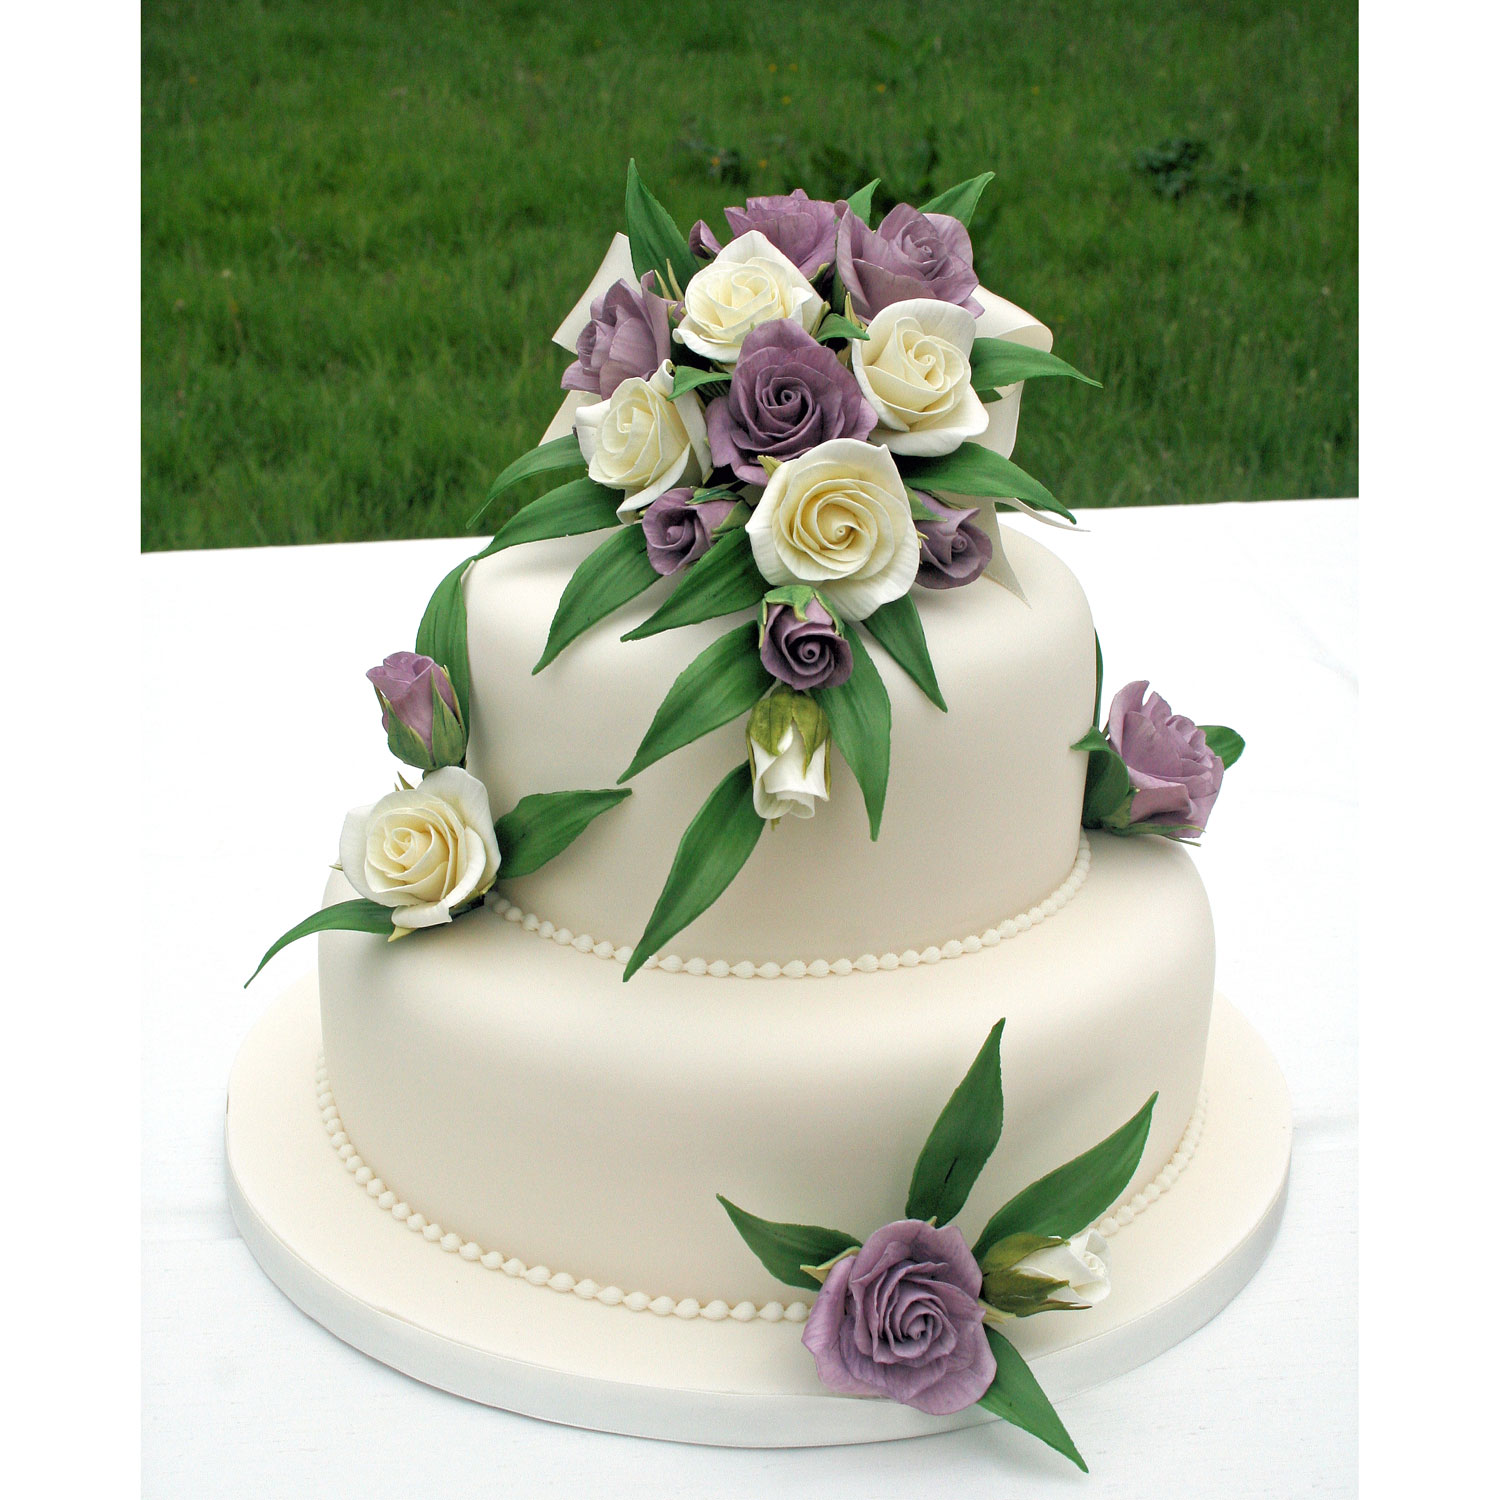 Floral wedding cakes floral wedding cakes and cakes with sugar roses 2 tier wedding cake with sugarcaft flowers izmirmasajfo